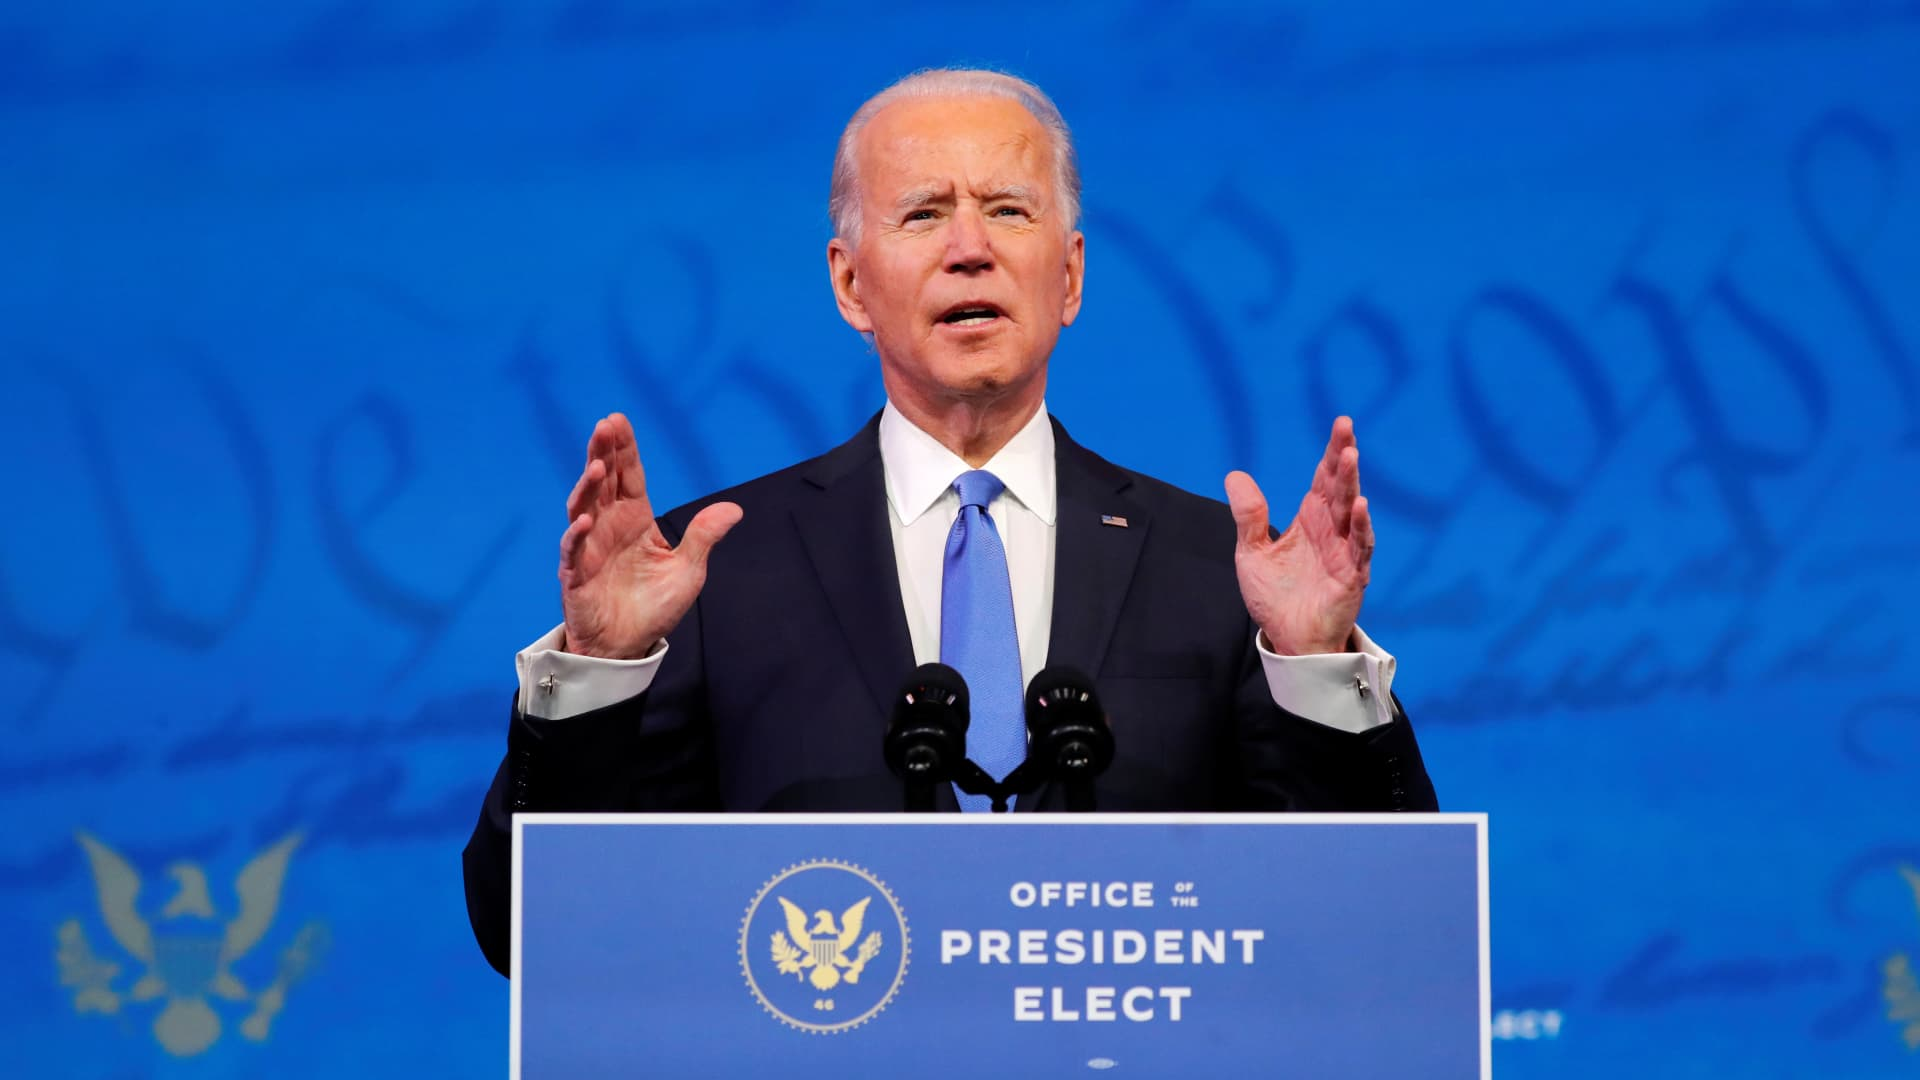 President-elect Joe Biden delivers a televised address to the nation, after the U.S. Electoral College formally confirmed his victory over President Donald Trump in the 2020 U.S. presidential election, from Biden's transition headquarters in Wilmington, Delaware, U.S., December 14, 2020.